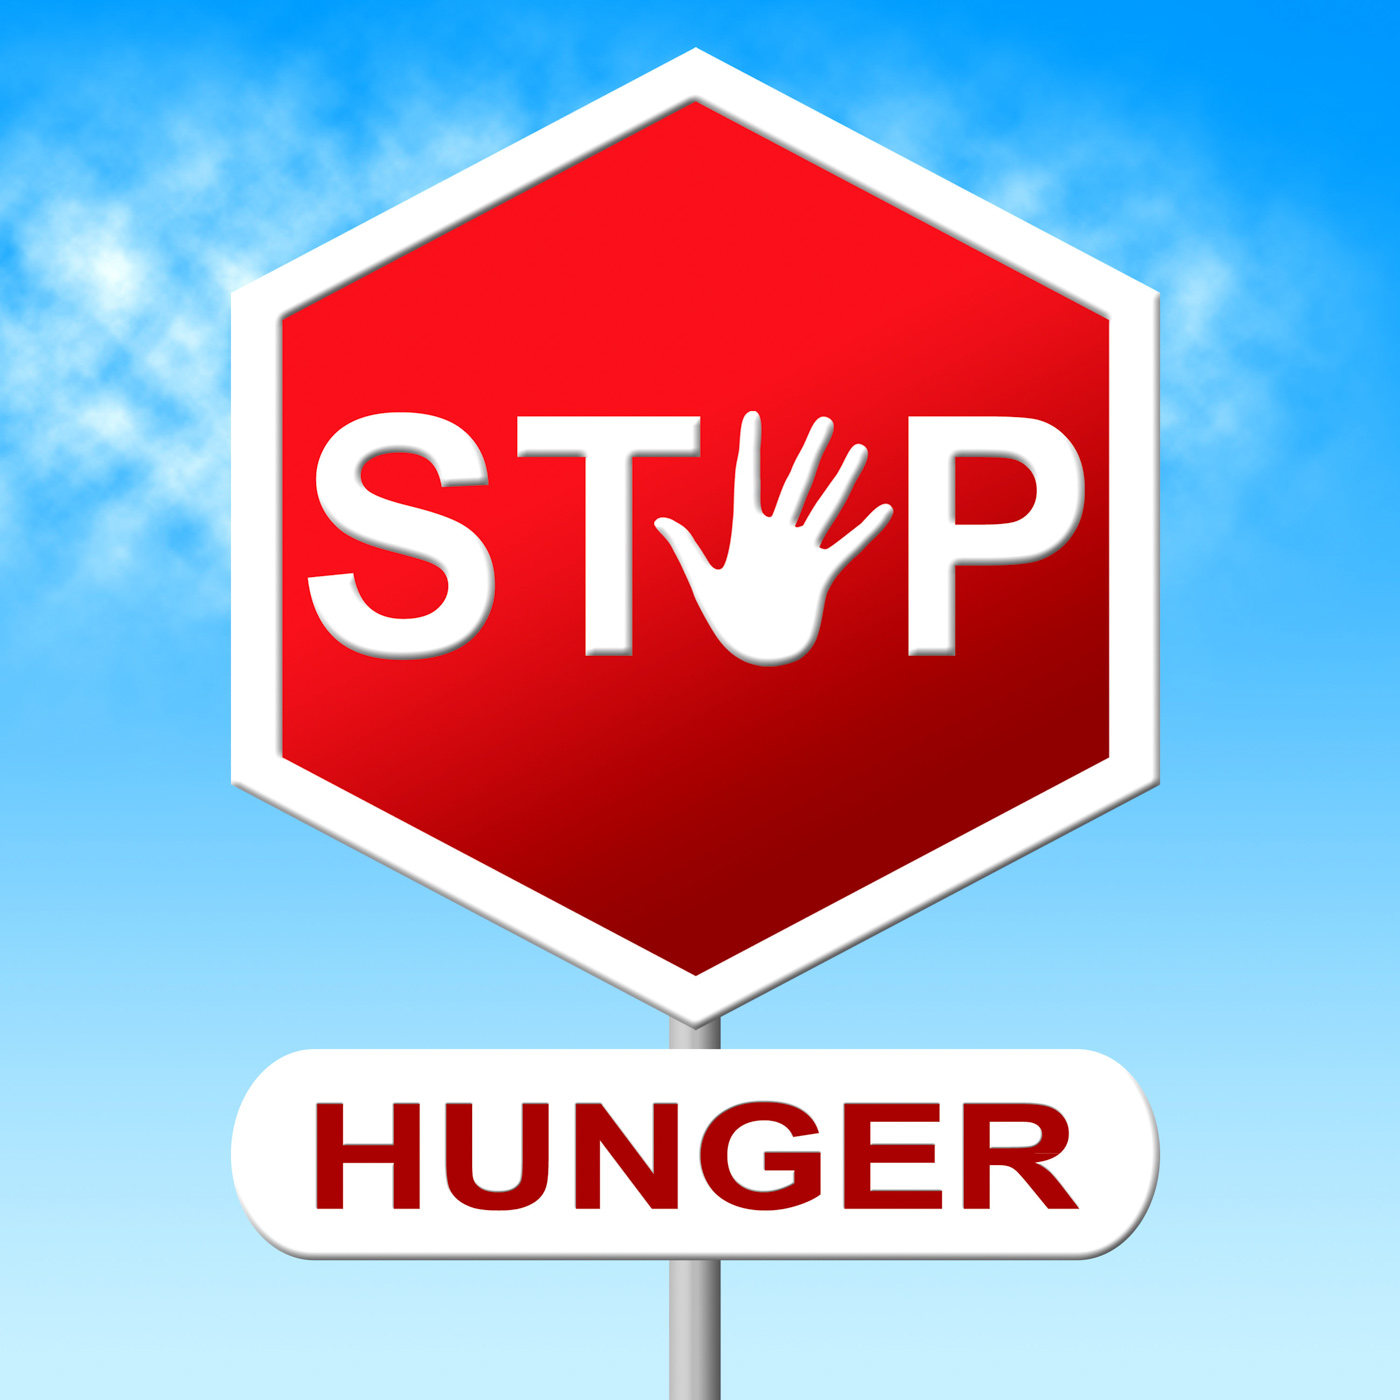 Hunger Stop Means Lack Of Food And Control, Caution, Warning, Undernourishment, Stopsign, HQ Photo